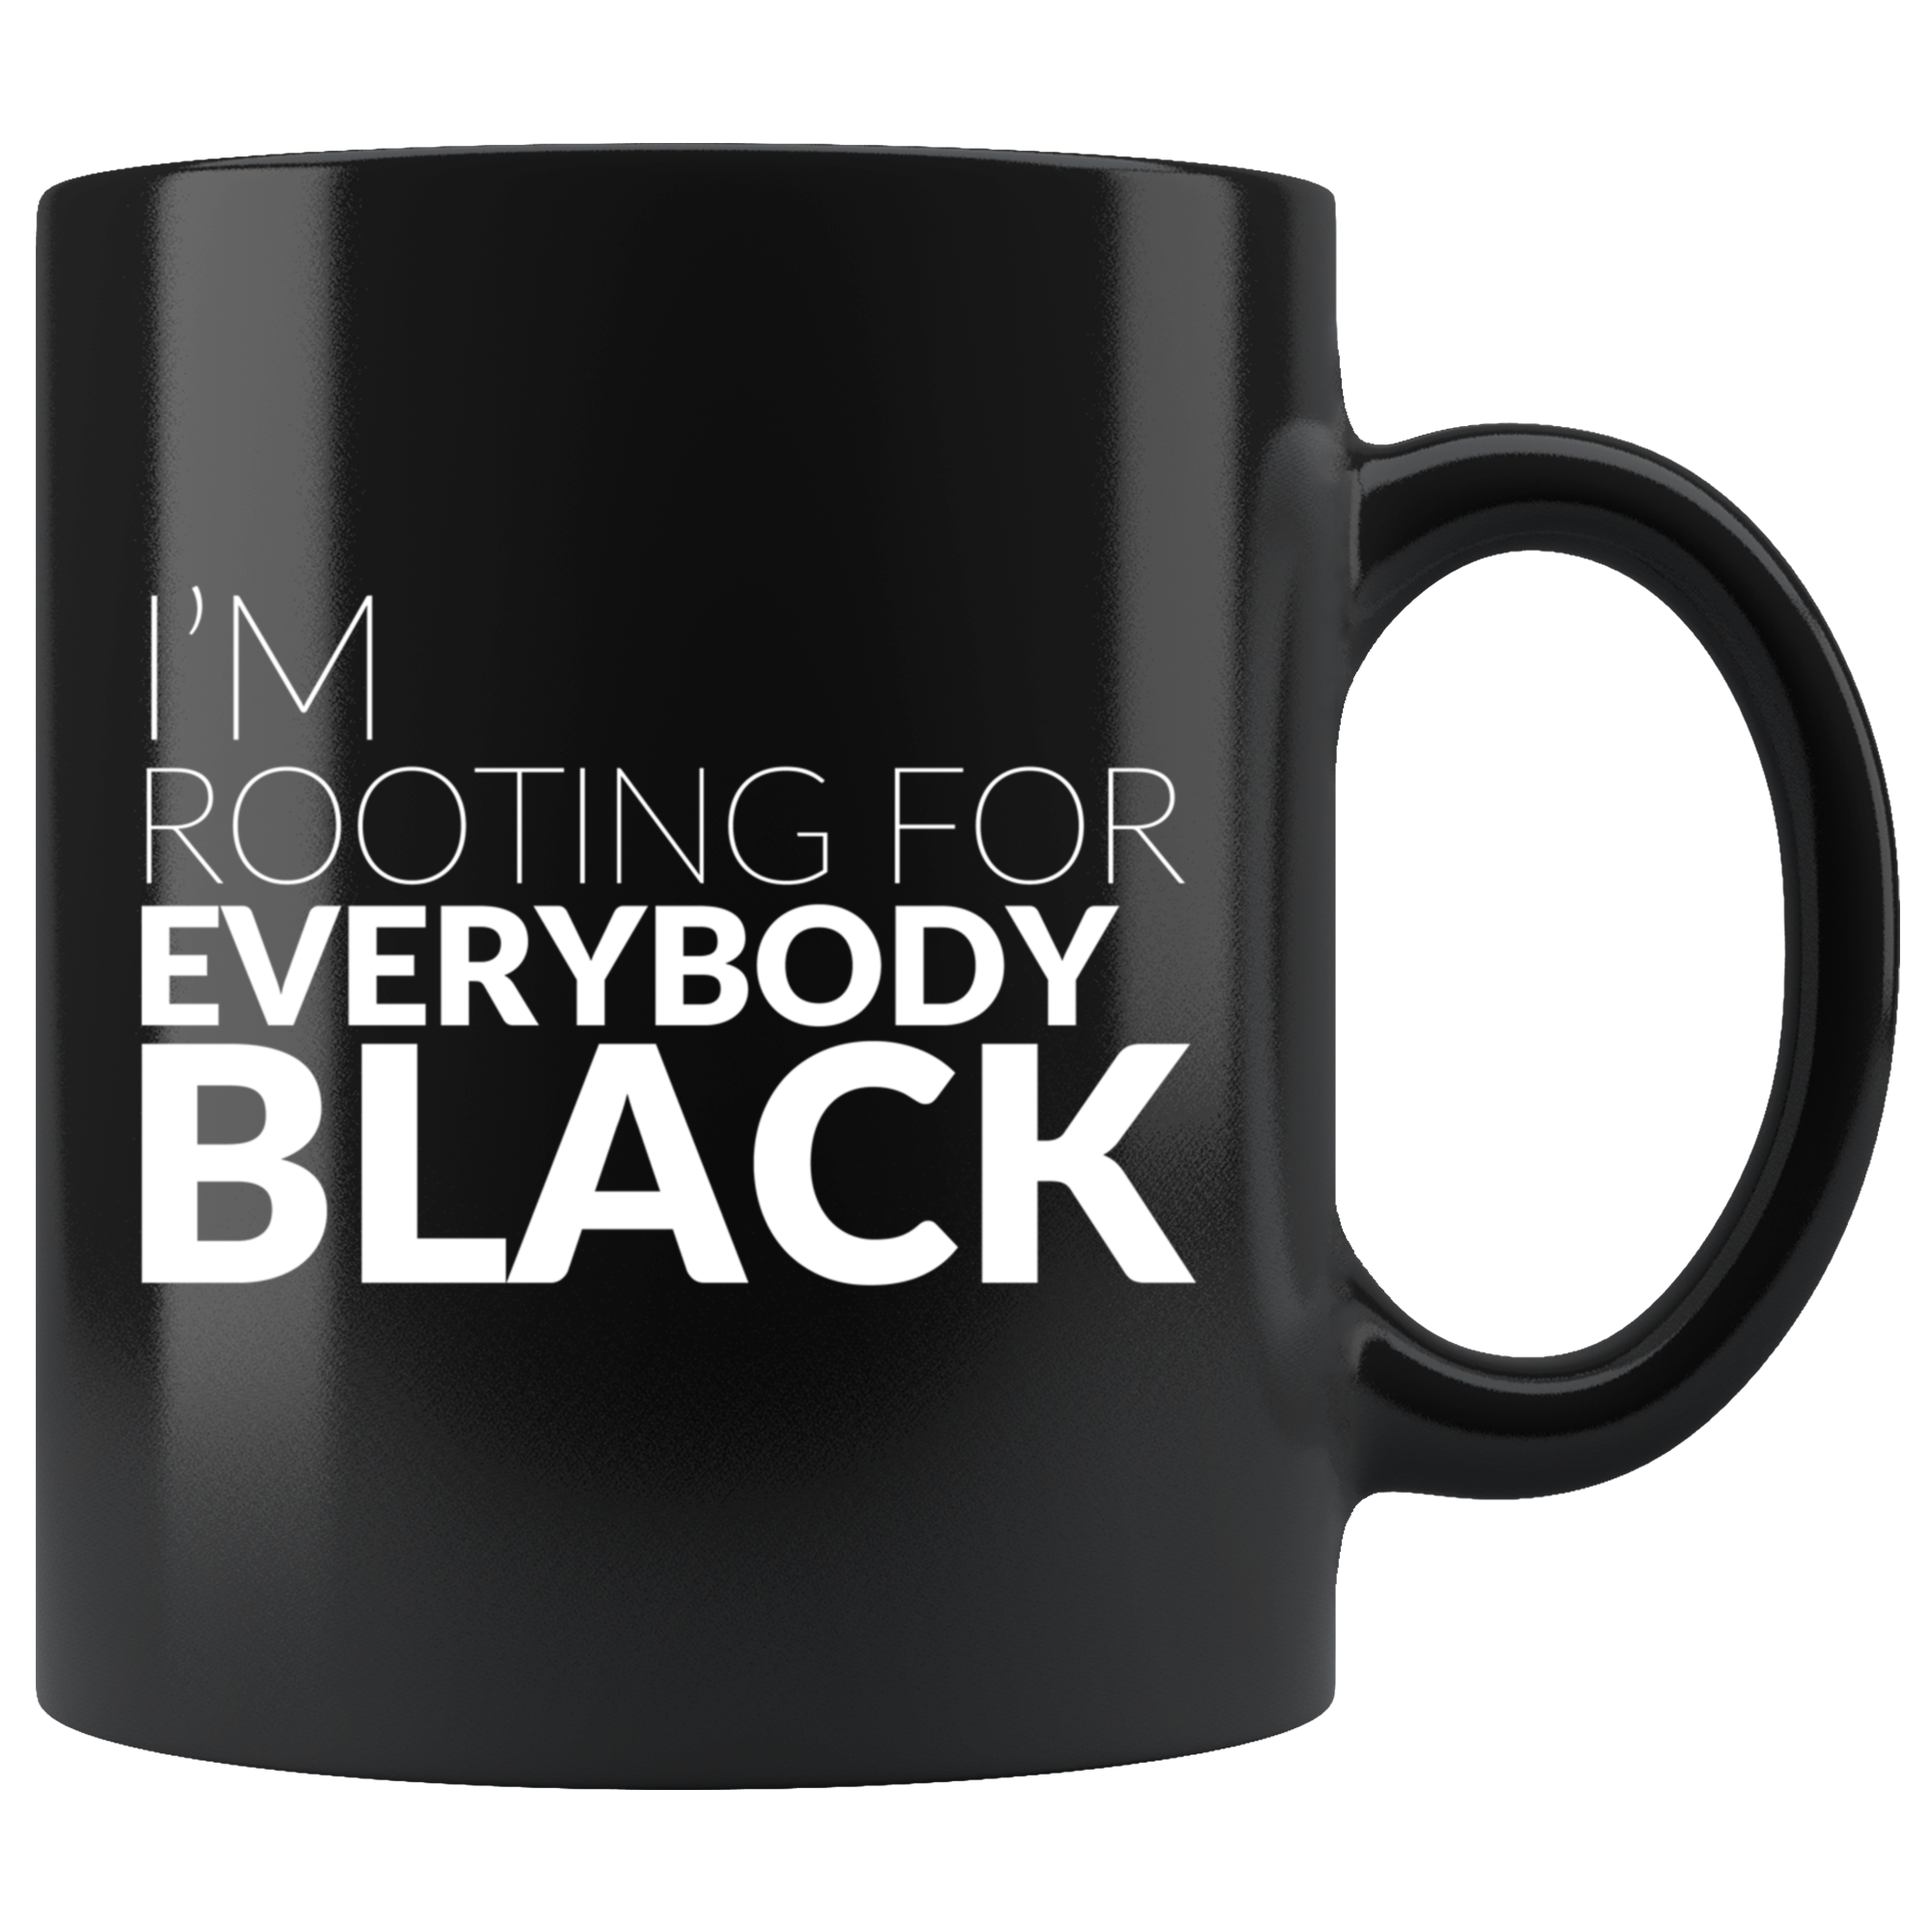 I'm Rooting For Everybody Black Ceramic Mug (2 Styles)